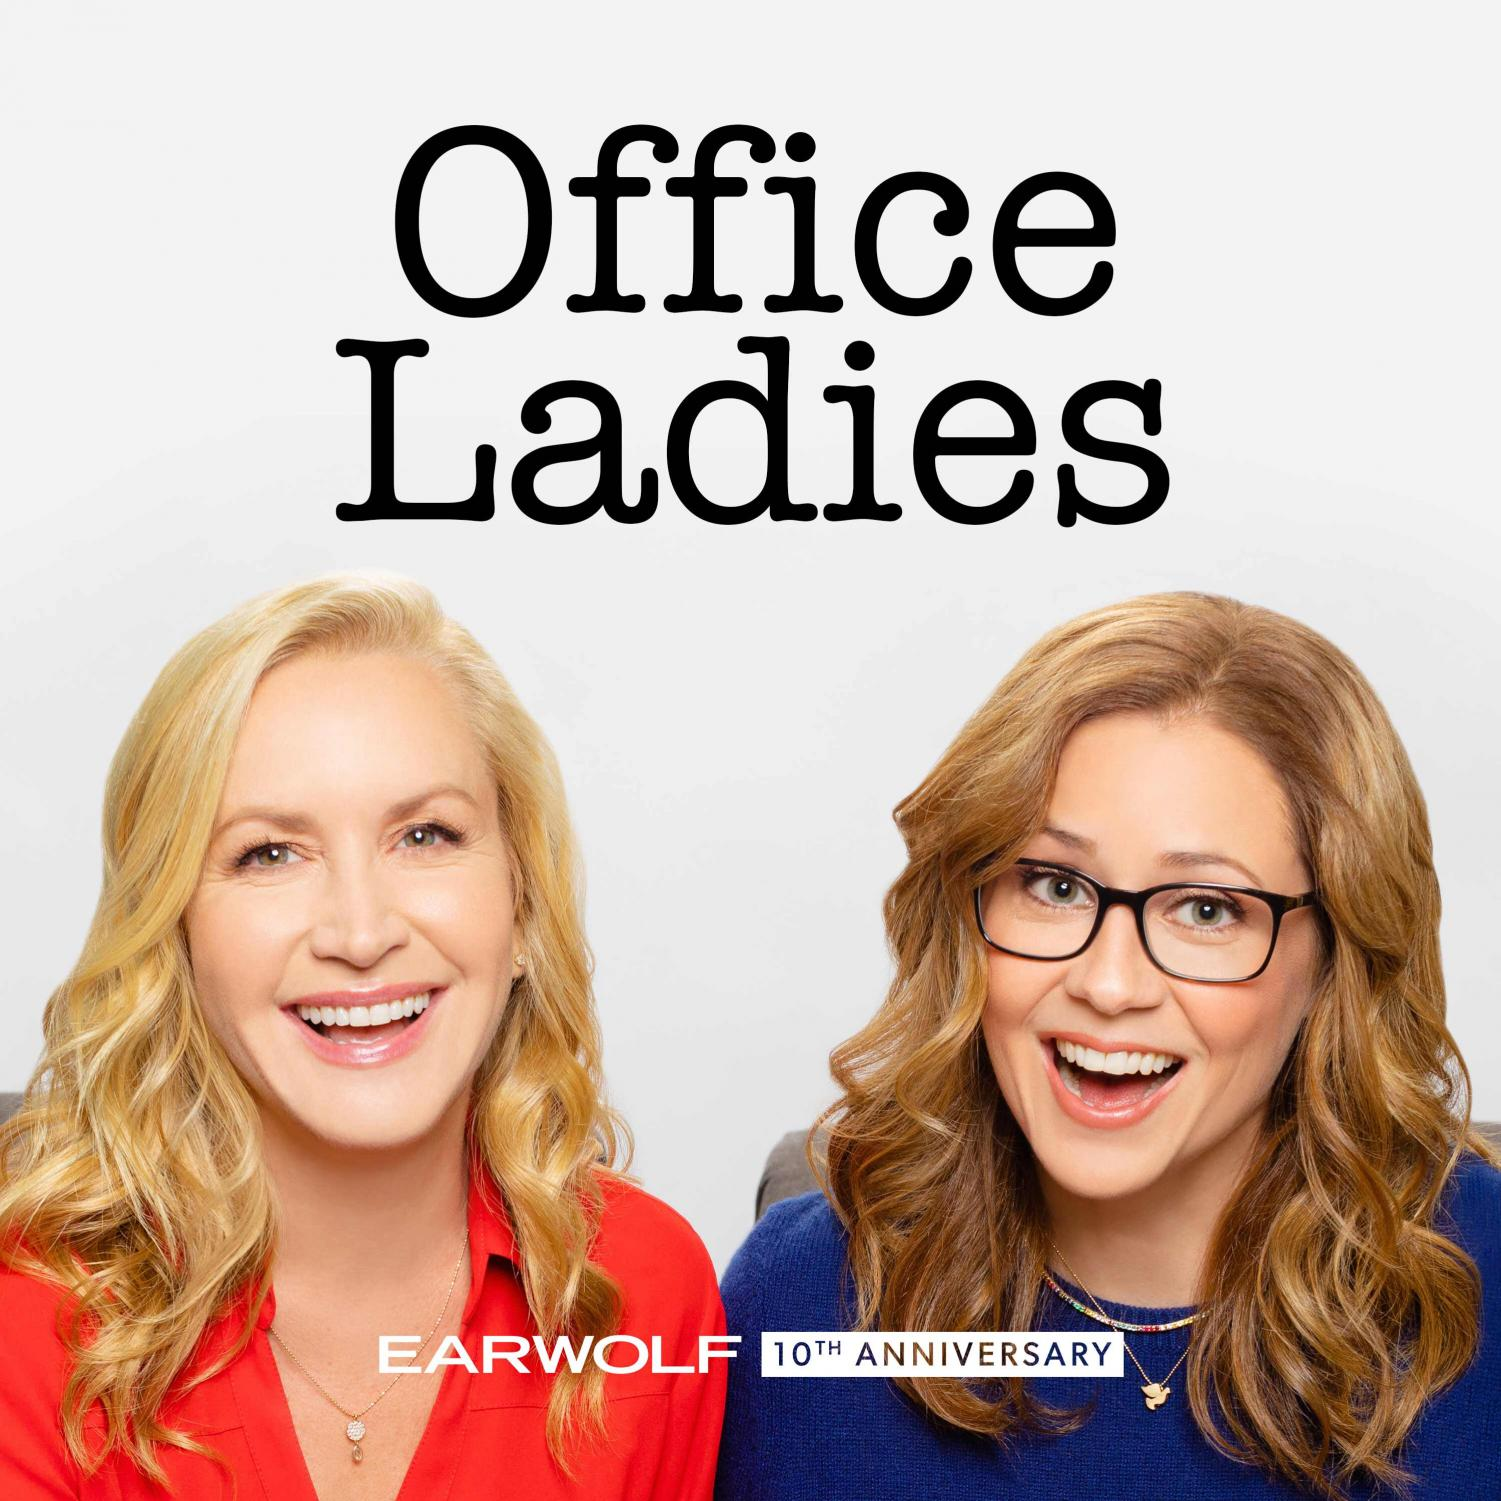 The Office Ladies podcast gives an insight into the behind the scenes of each episode of the American TV show The Office.